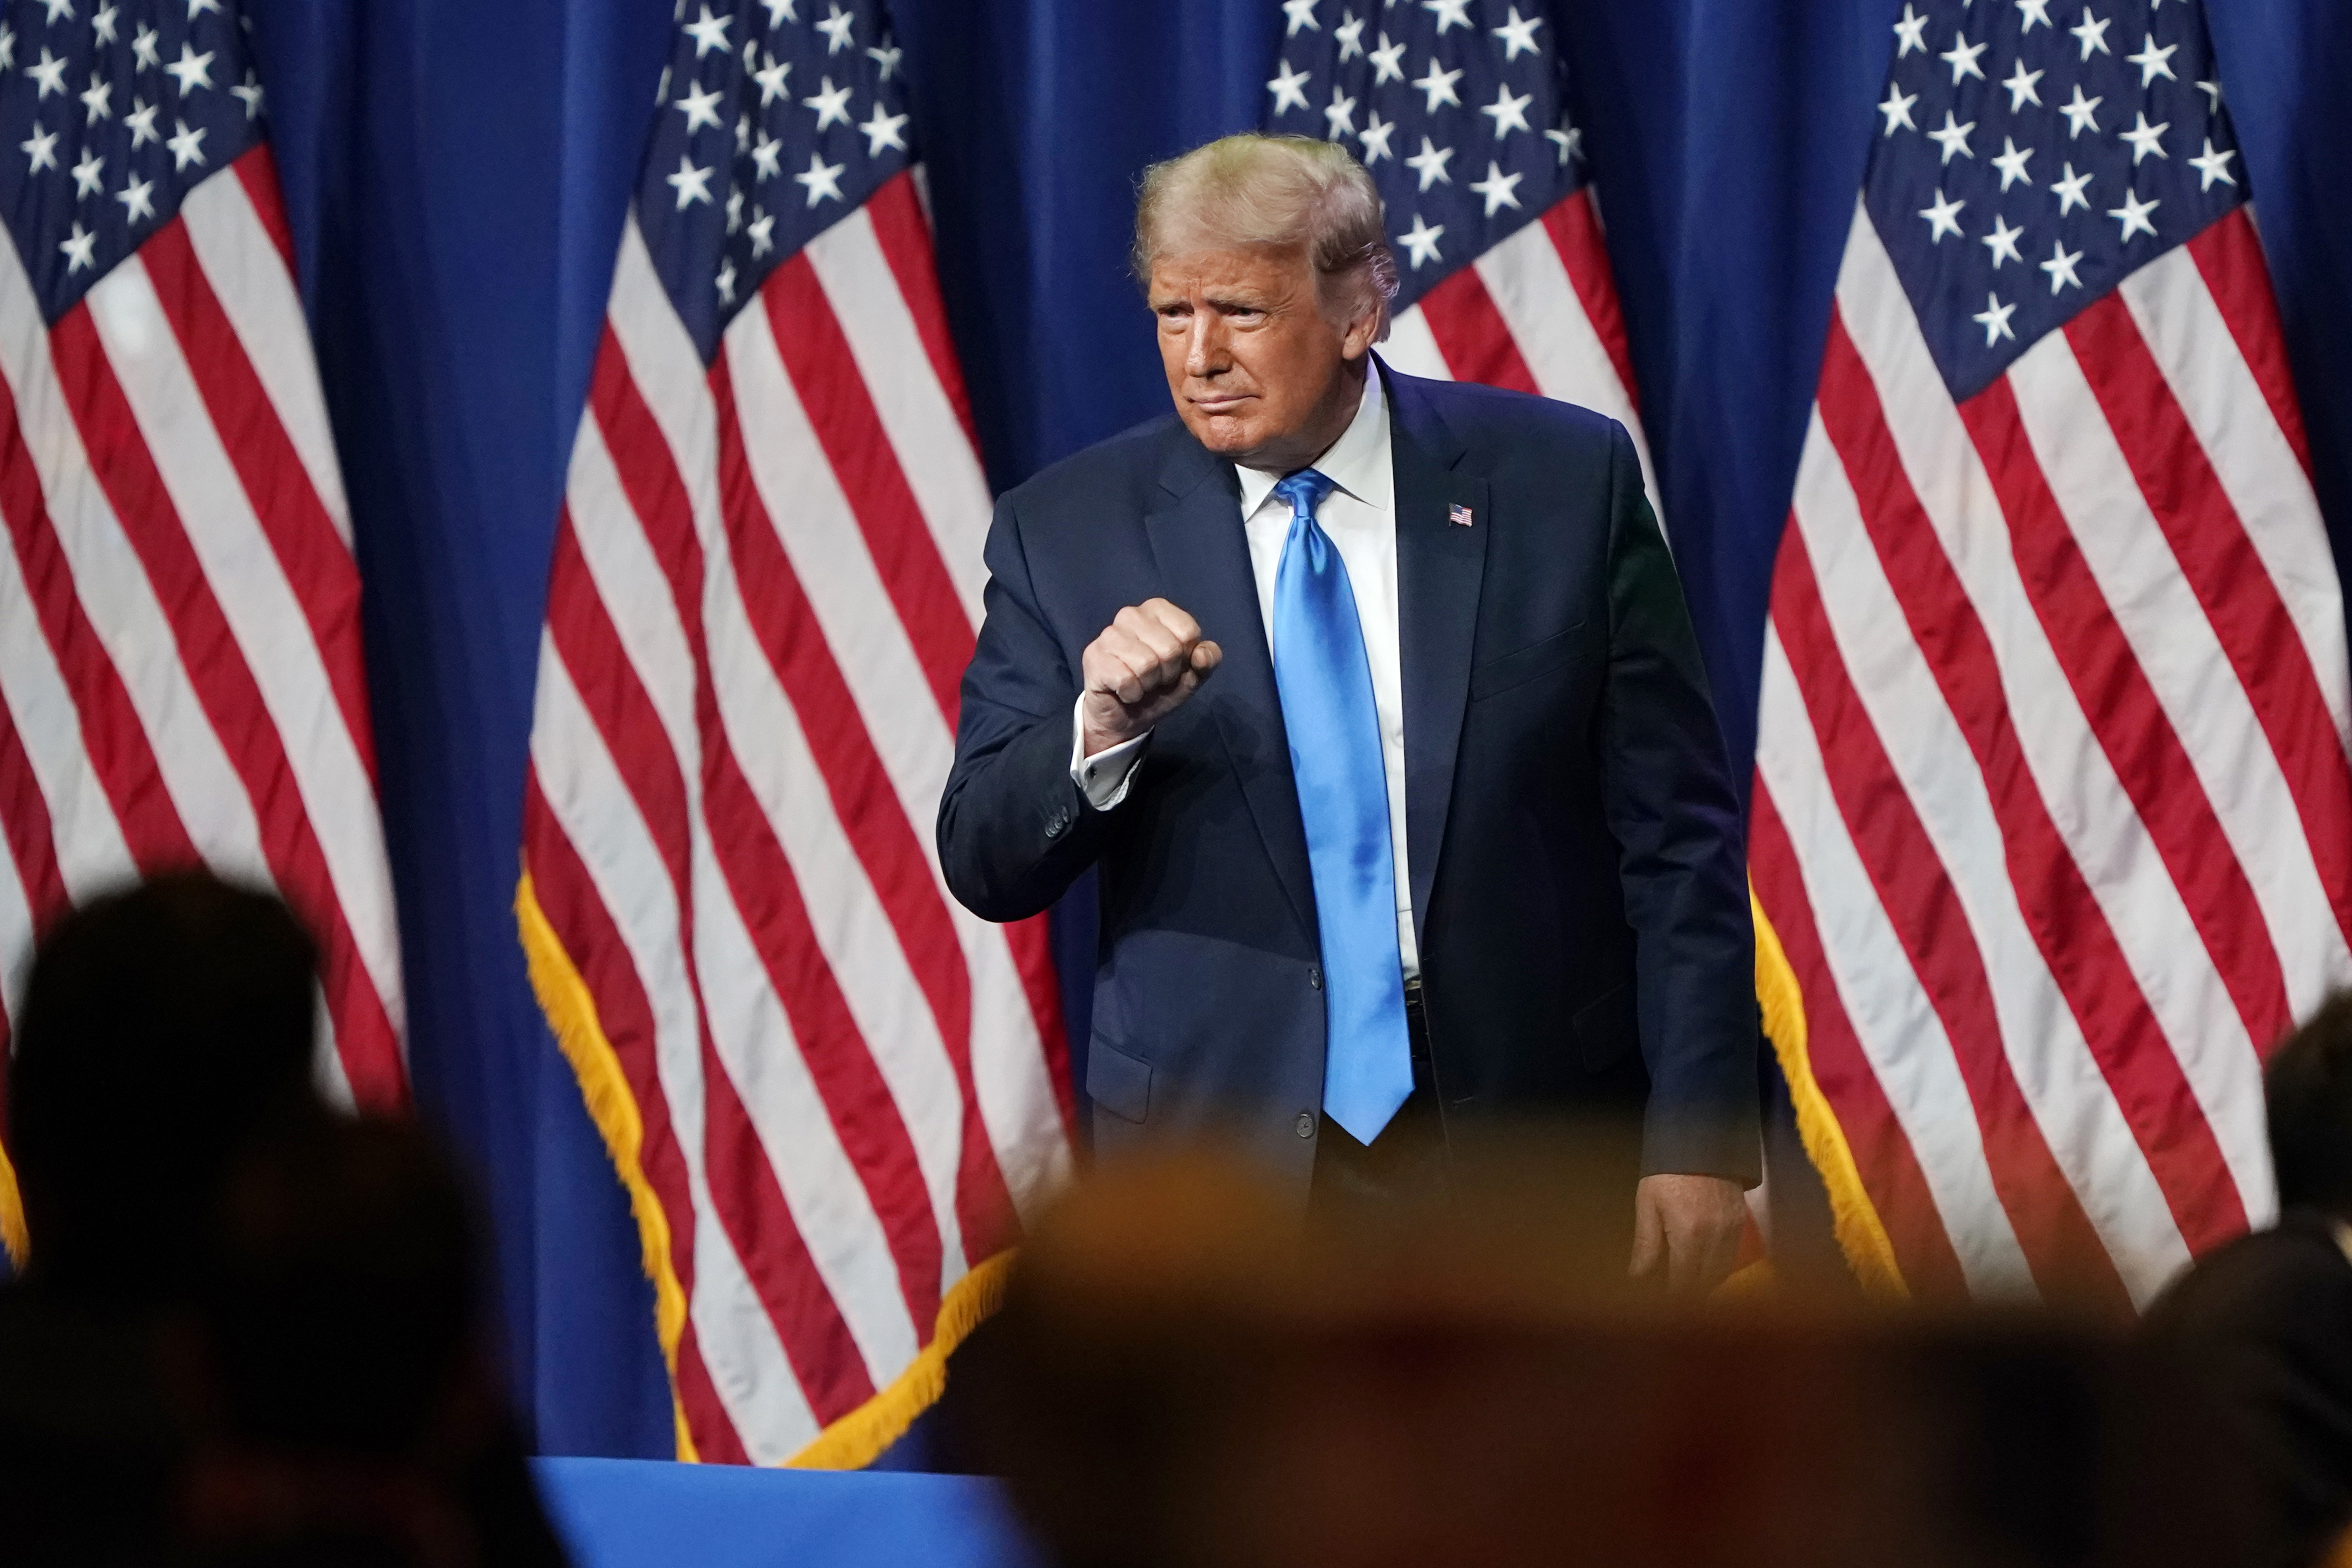 President Donald Trump interacts with the crowd after speaking during the first day of the Republican National Convention